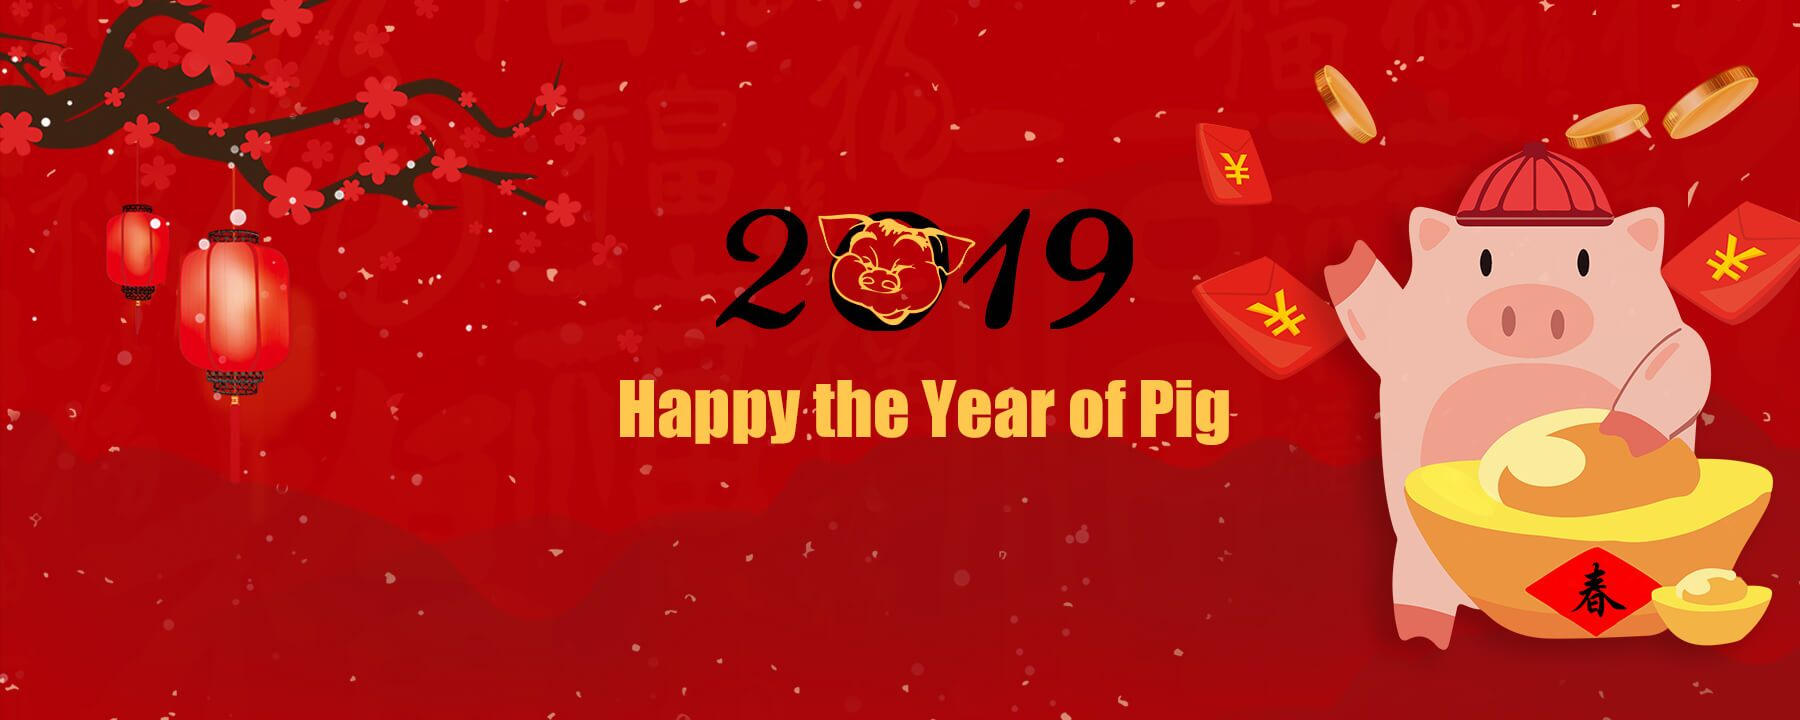 Chinese New Year in 2019